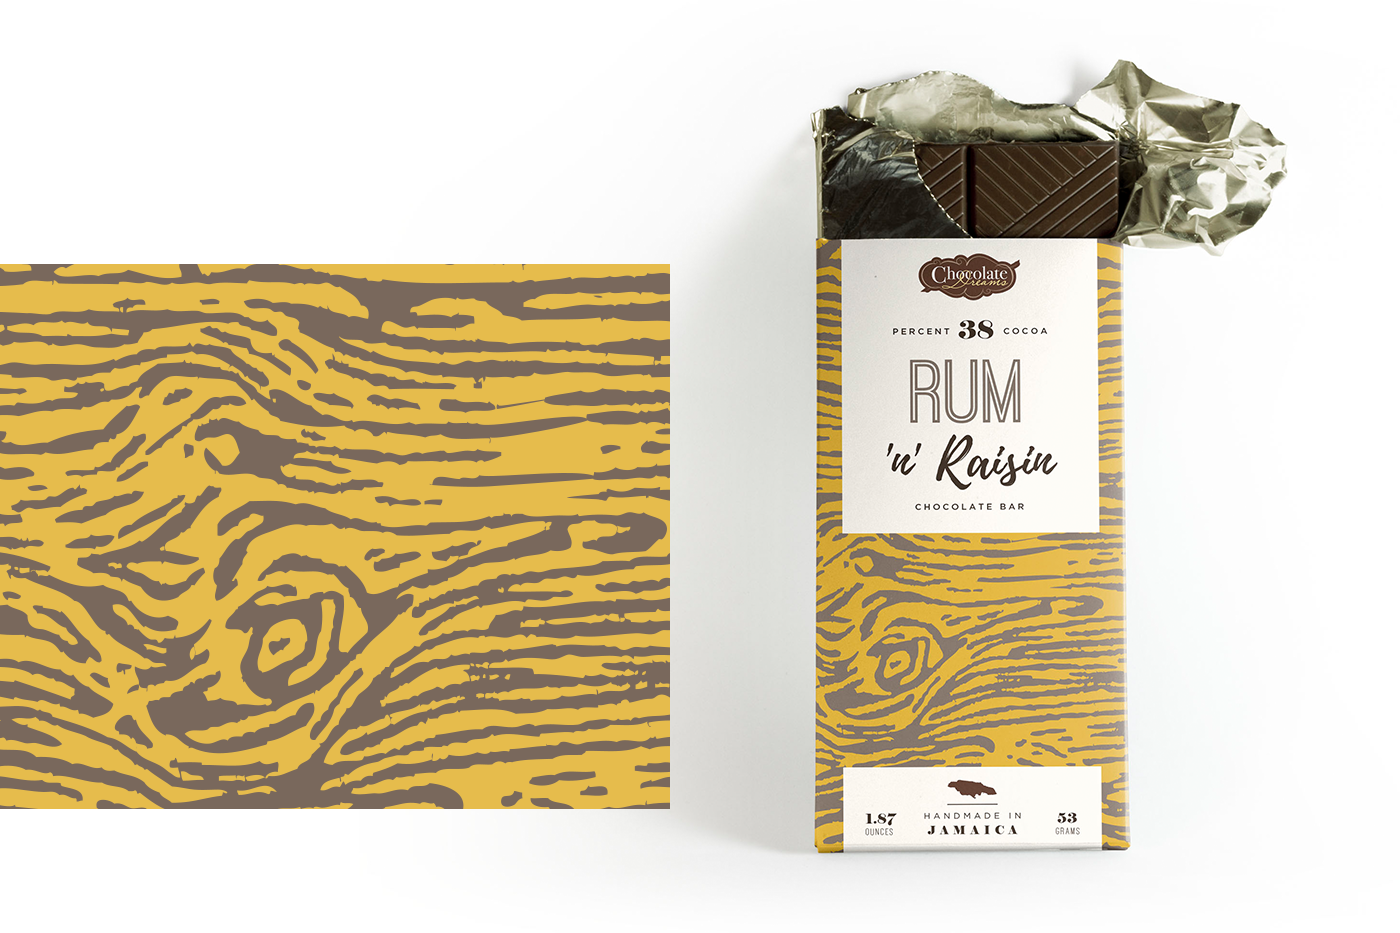 chocolate bar Coffee Cocoa jamaica Packaging Label